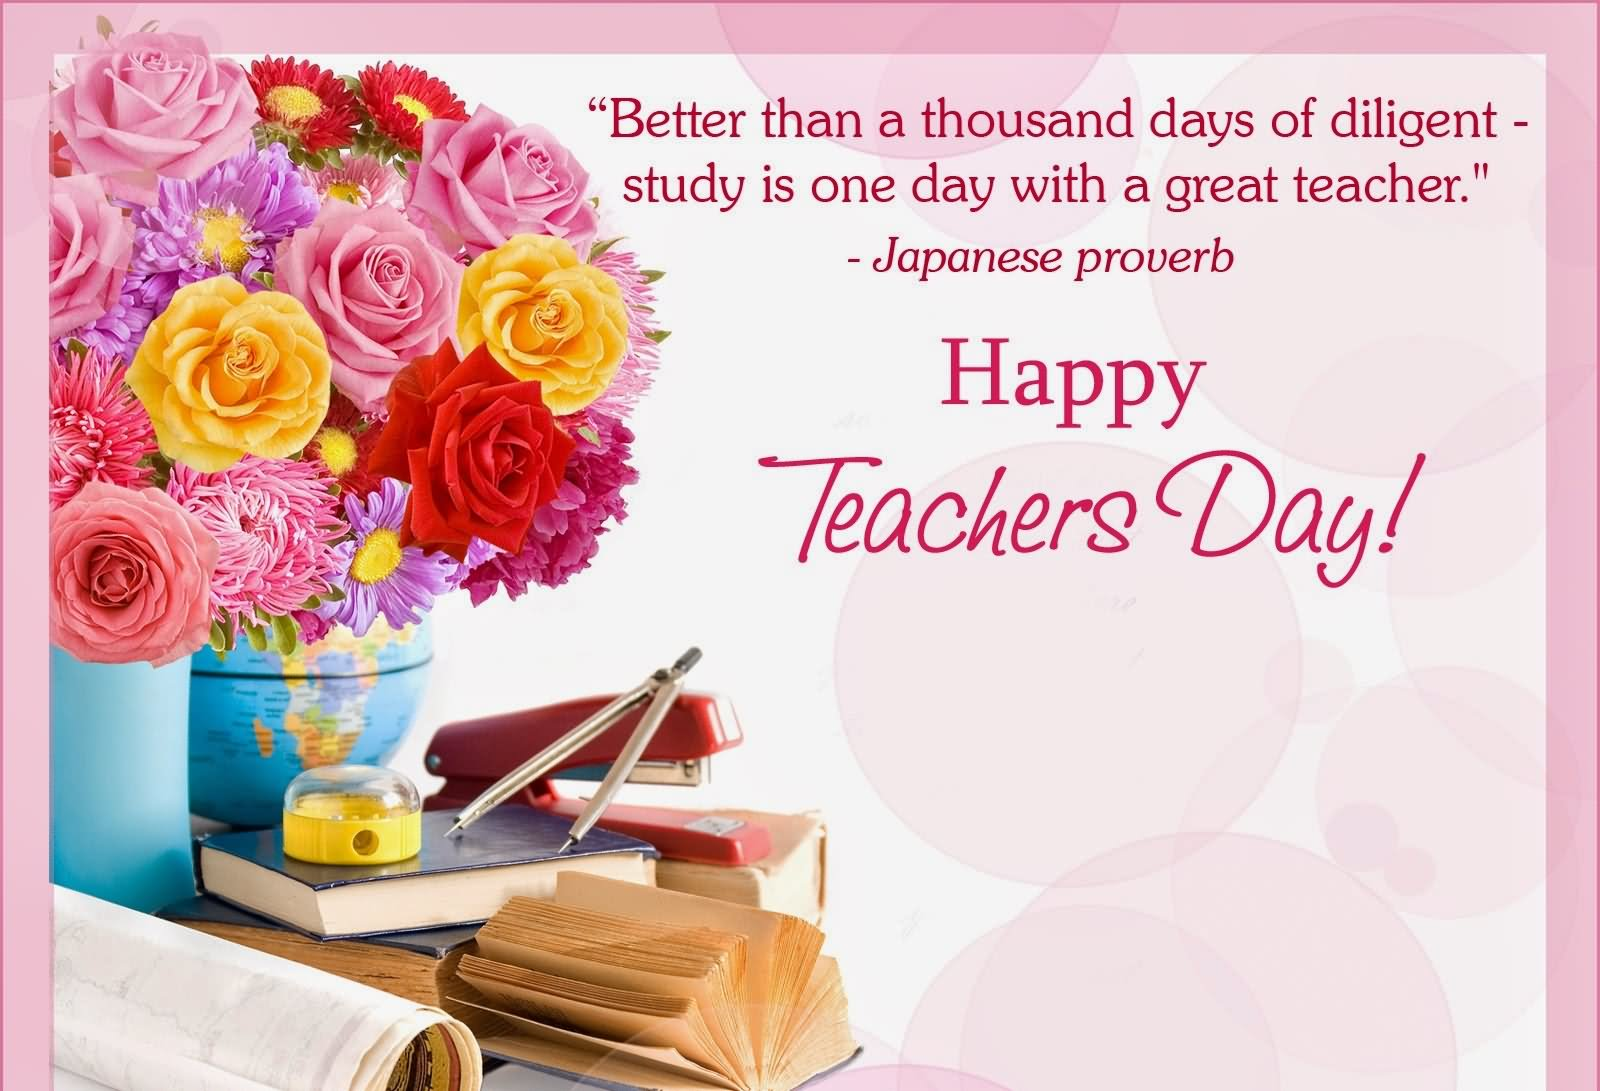 Teachers Day Card – How to Make A Homemade Teacher's Day Card